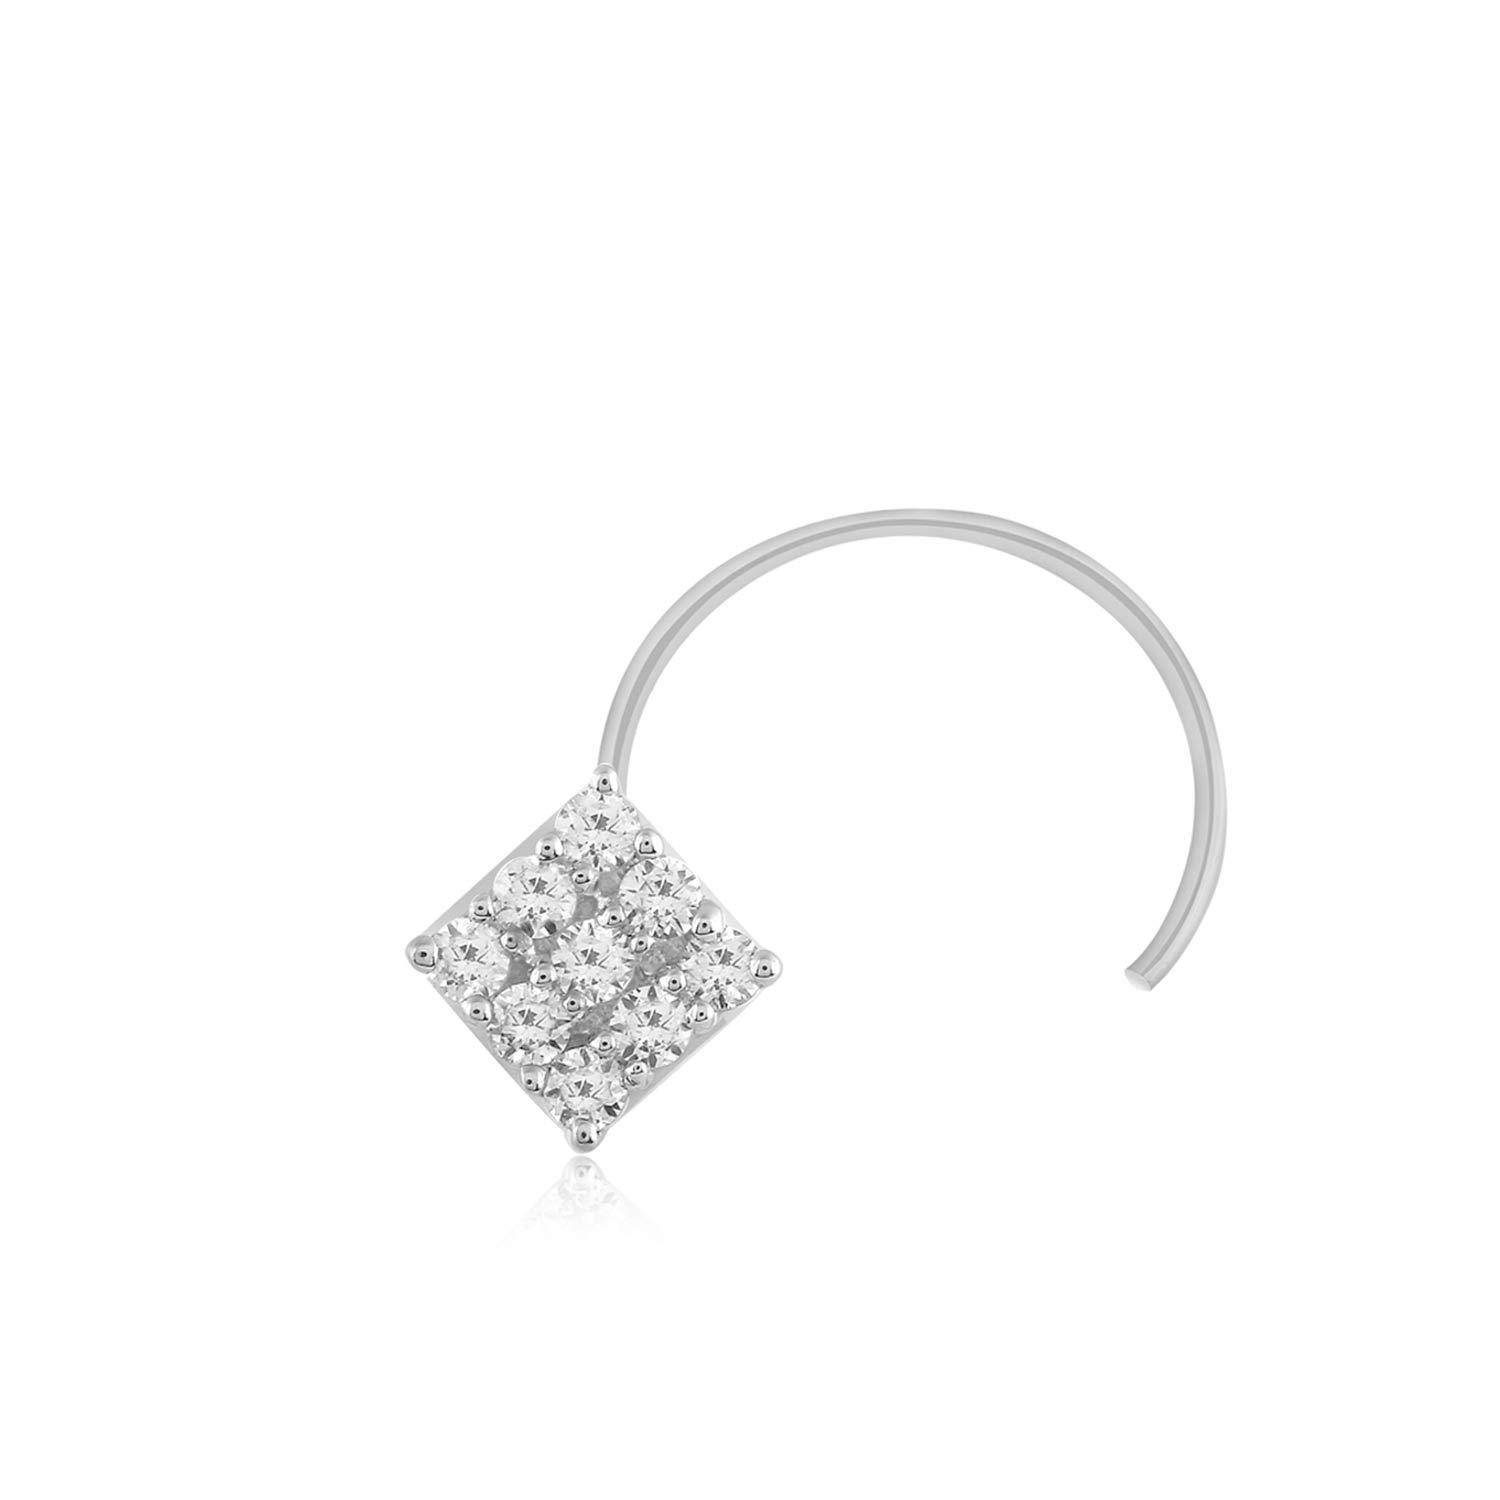 0.08 Ct Real Natural Diamond Nose Stud Ring Pin 925 Solid Sterling Silver CARATS FOR YOU JIF013102